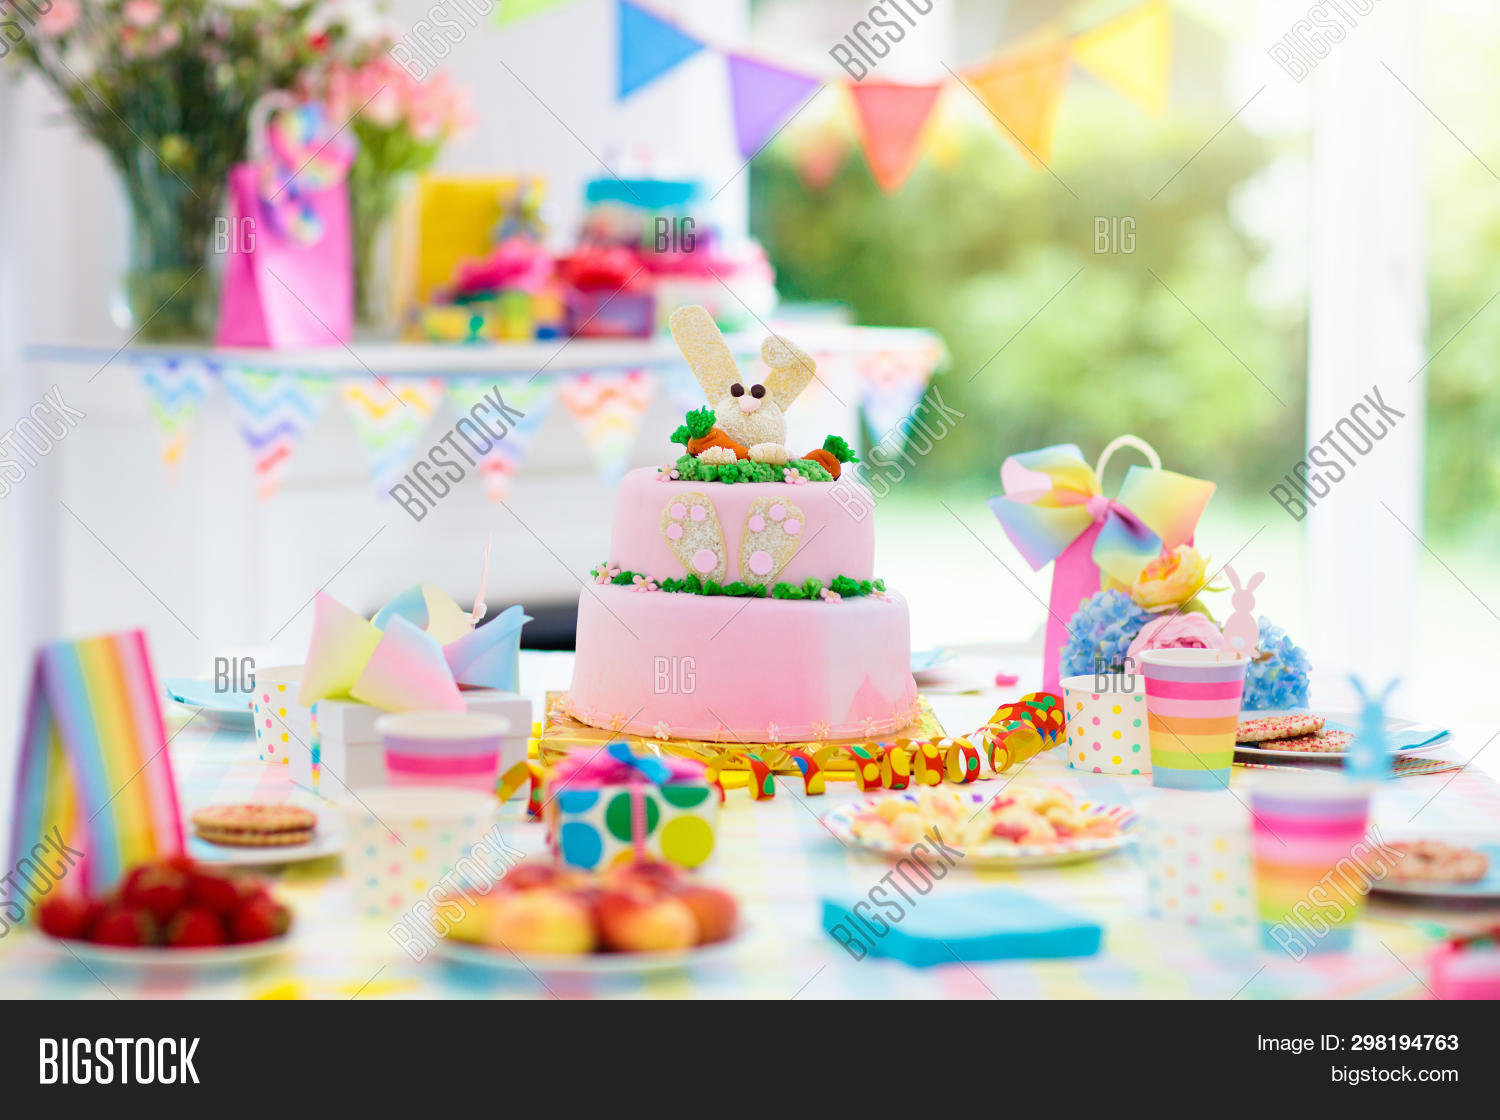 airplane,anniversary,baby,background,balloons,banner,birthday,boy,cake,candy,cars,celebrate,celebration,child,childhood,color,colorful,confetti,cupcake,decor,decoration,dessert,dish,event,family,festive,flag,food,garden,gift,hat,holiday,home,interior,kids,nobody,party,pastry,preschooler,present,rainbow,surprise,sweet,table,theme,toddler,transport,white,window,year